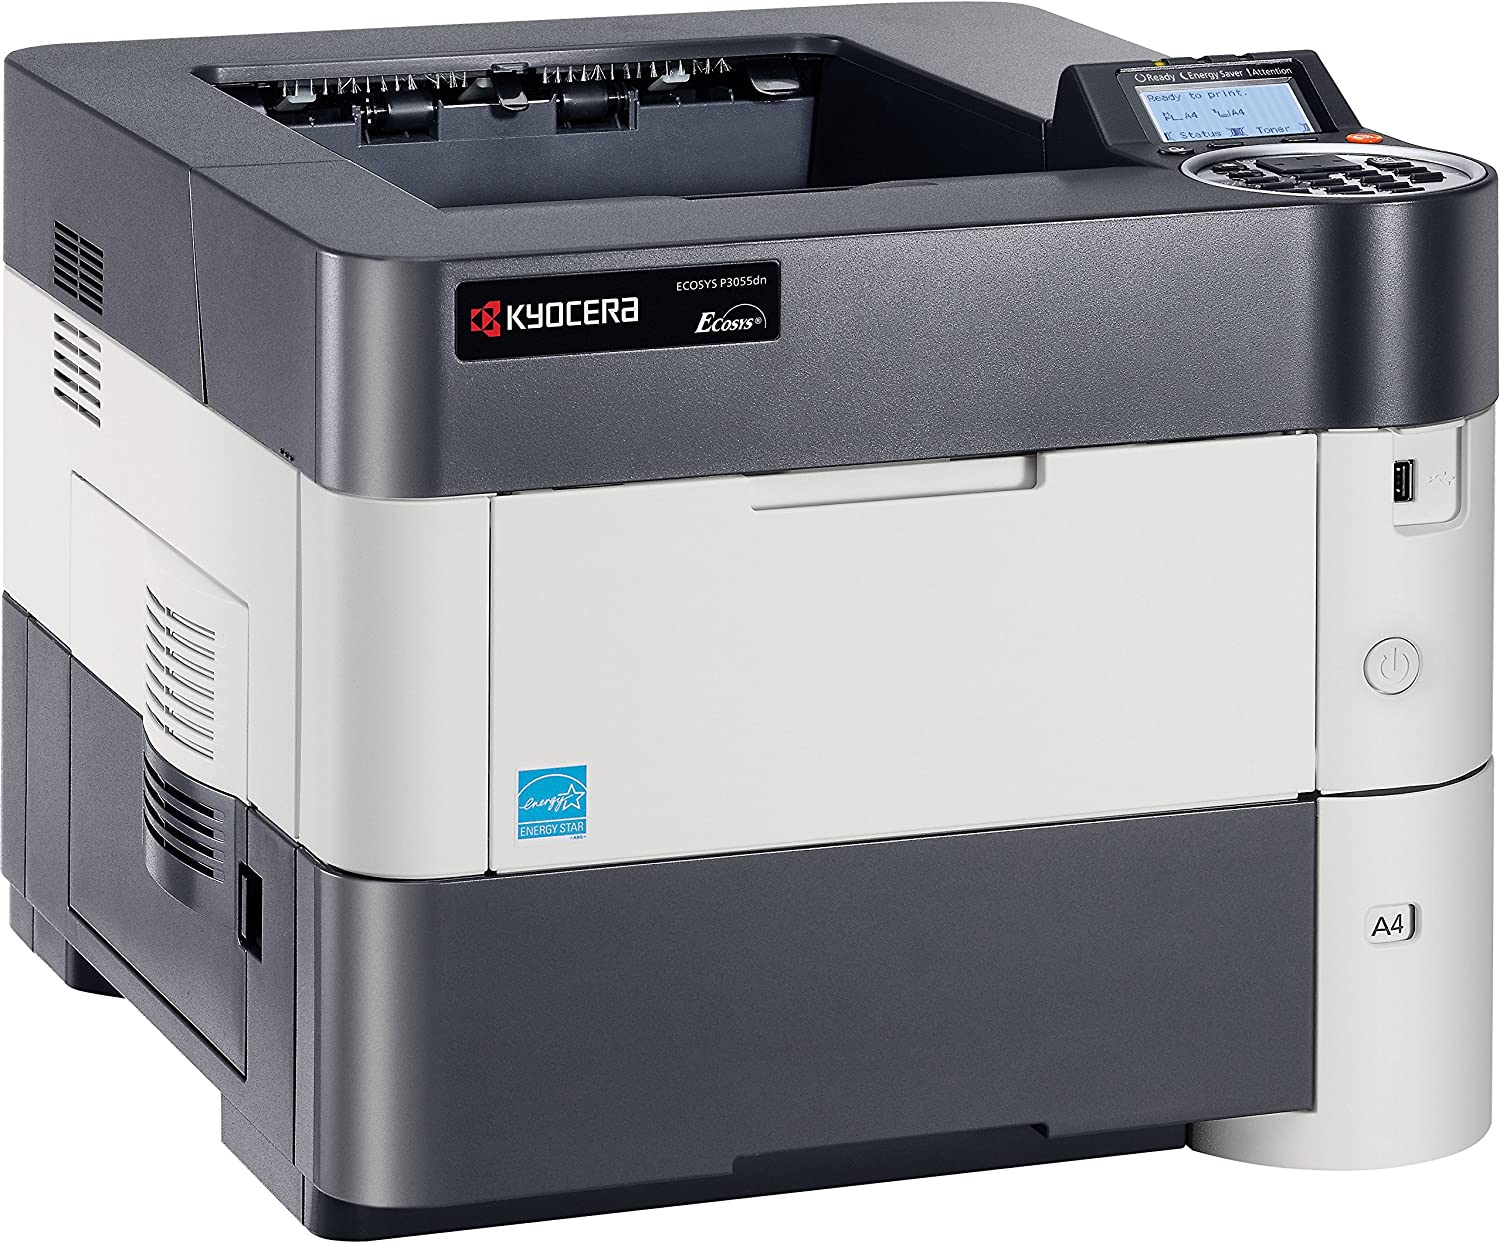 Kyocera 1102T72US0 ECOSYS P3055dn Black & White Network Printer, 5 Line LCD Screen with Hard Key Control Panel, Up to Fine 1200 DPI Print Resolution, ...